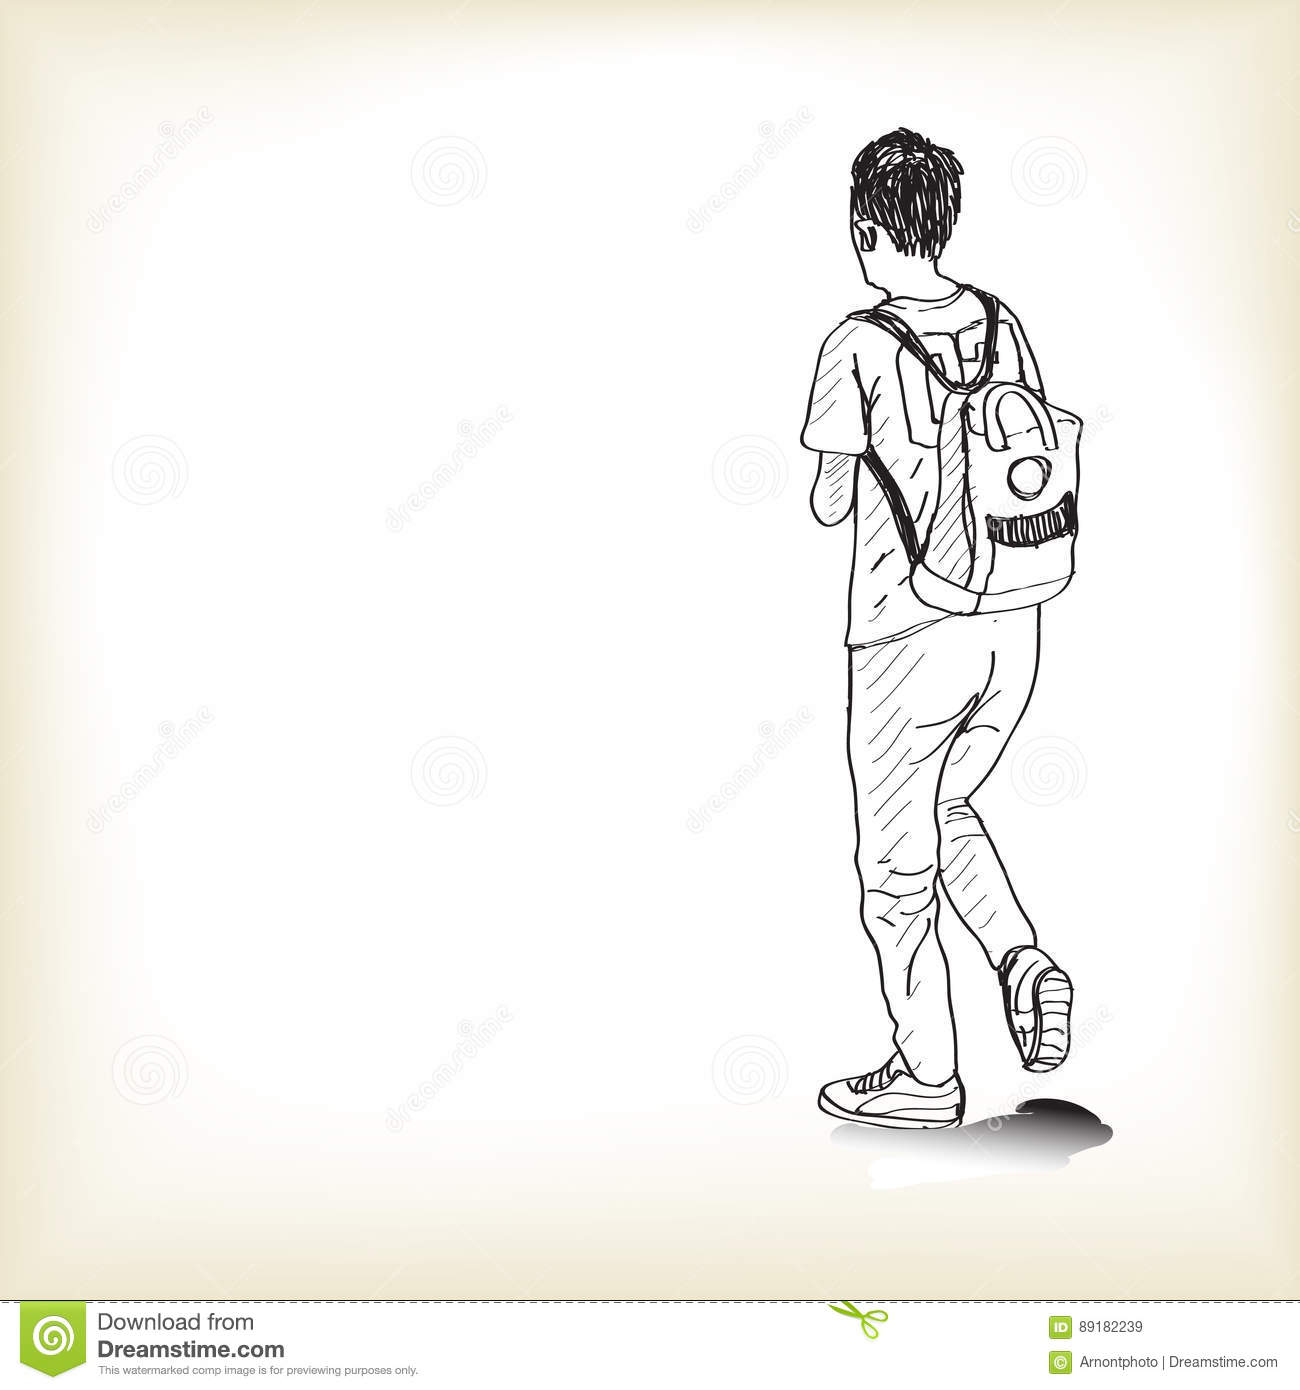 Sketch a boy walking with backpack to schoo